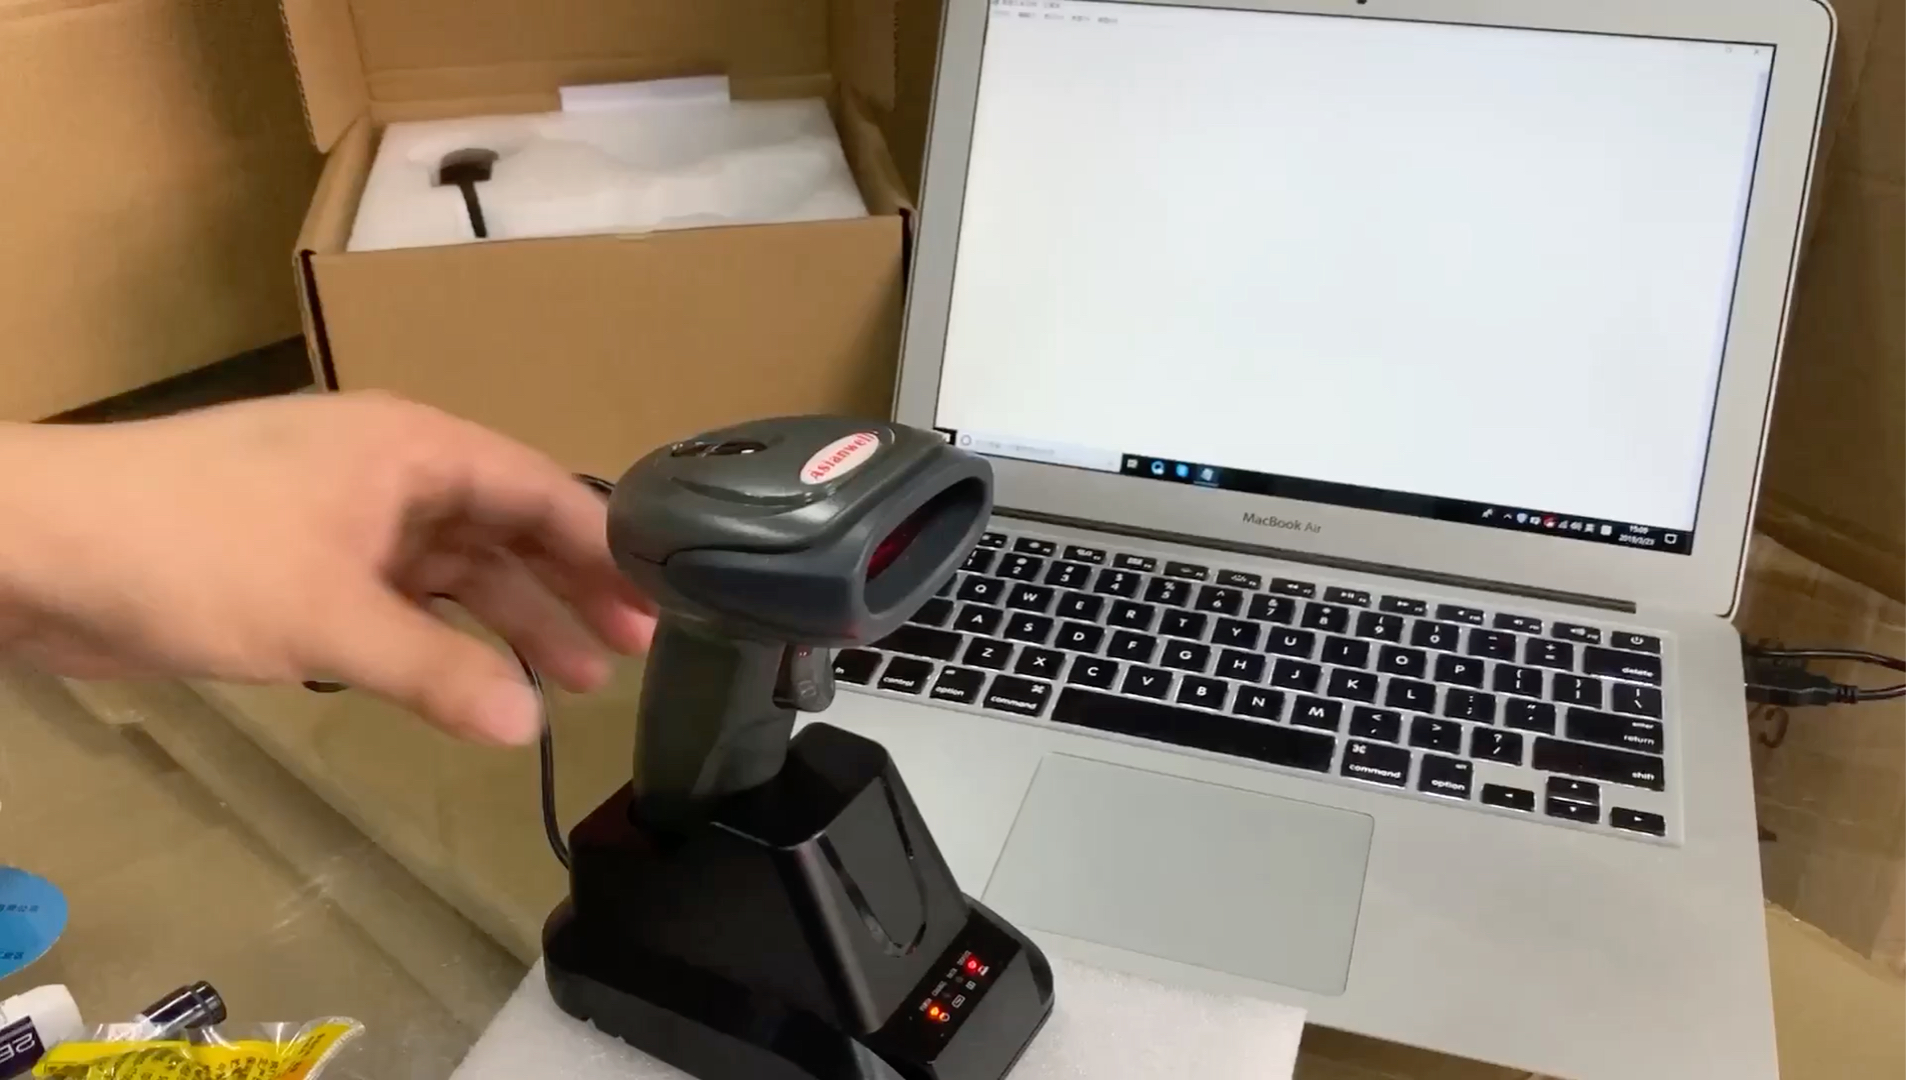 USB Automatic Handheld Barcode Scanner / Reader With Free Adjustable Stand